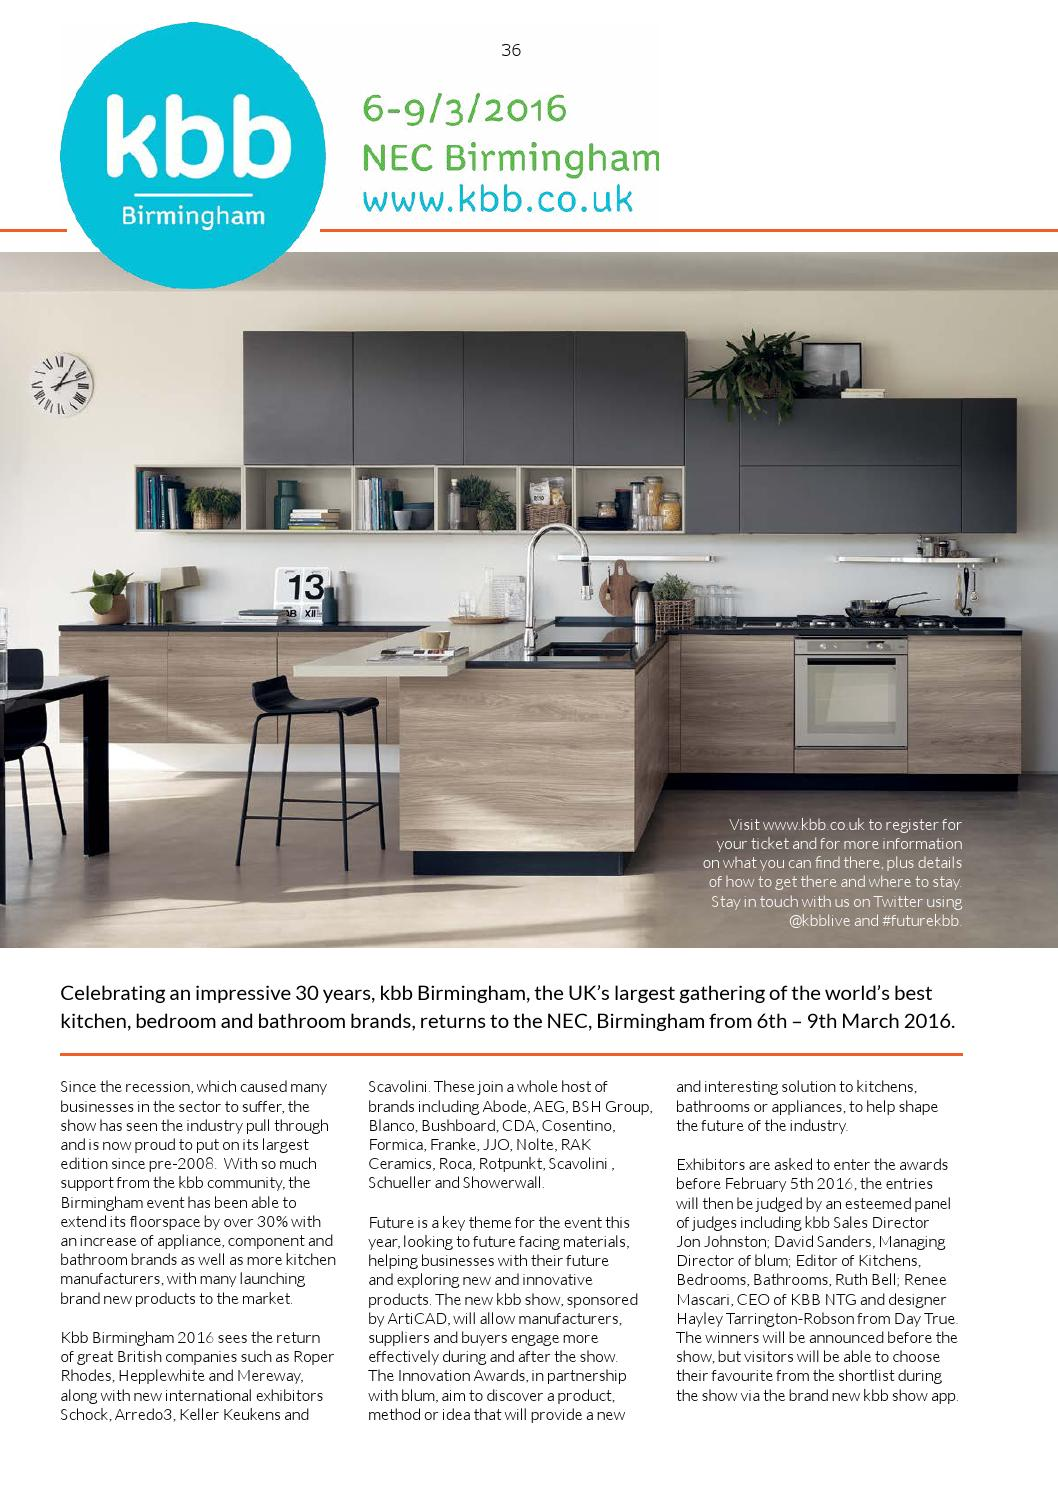 The art of design issue 18 2016 by mh media global issuu for Kbb birmingham 2016